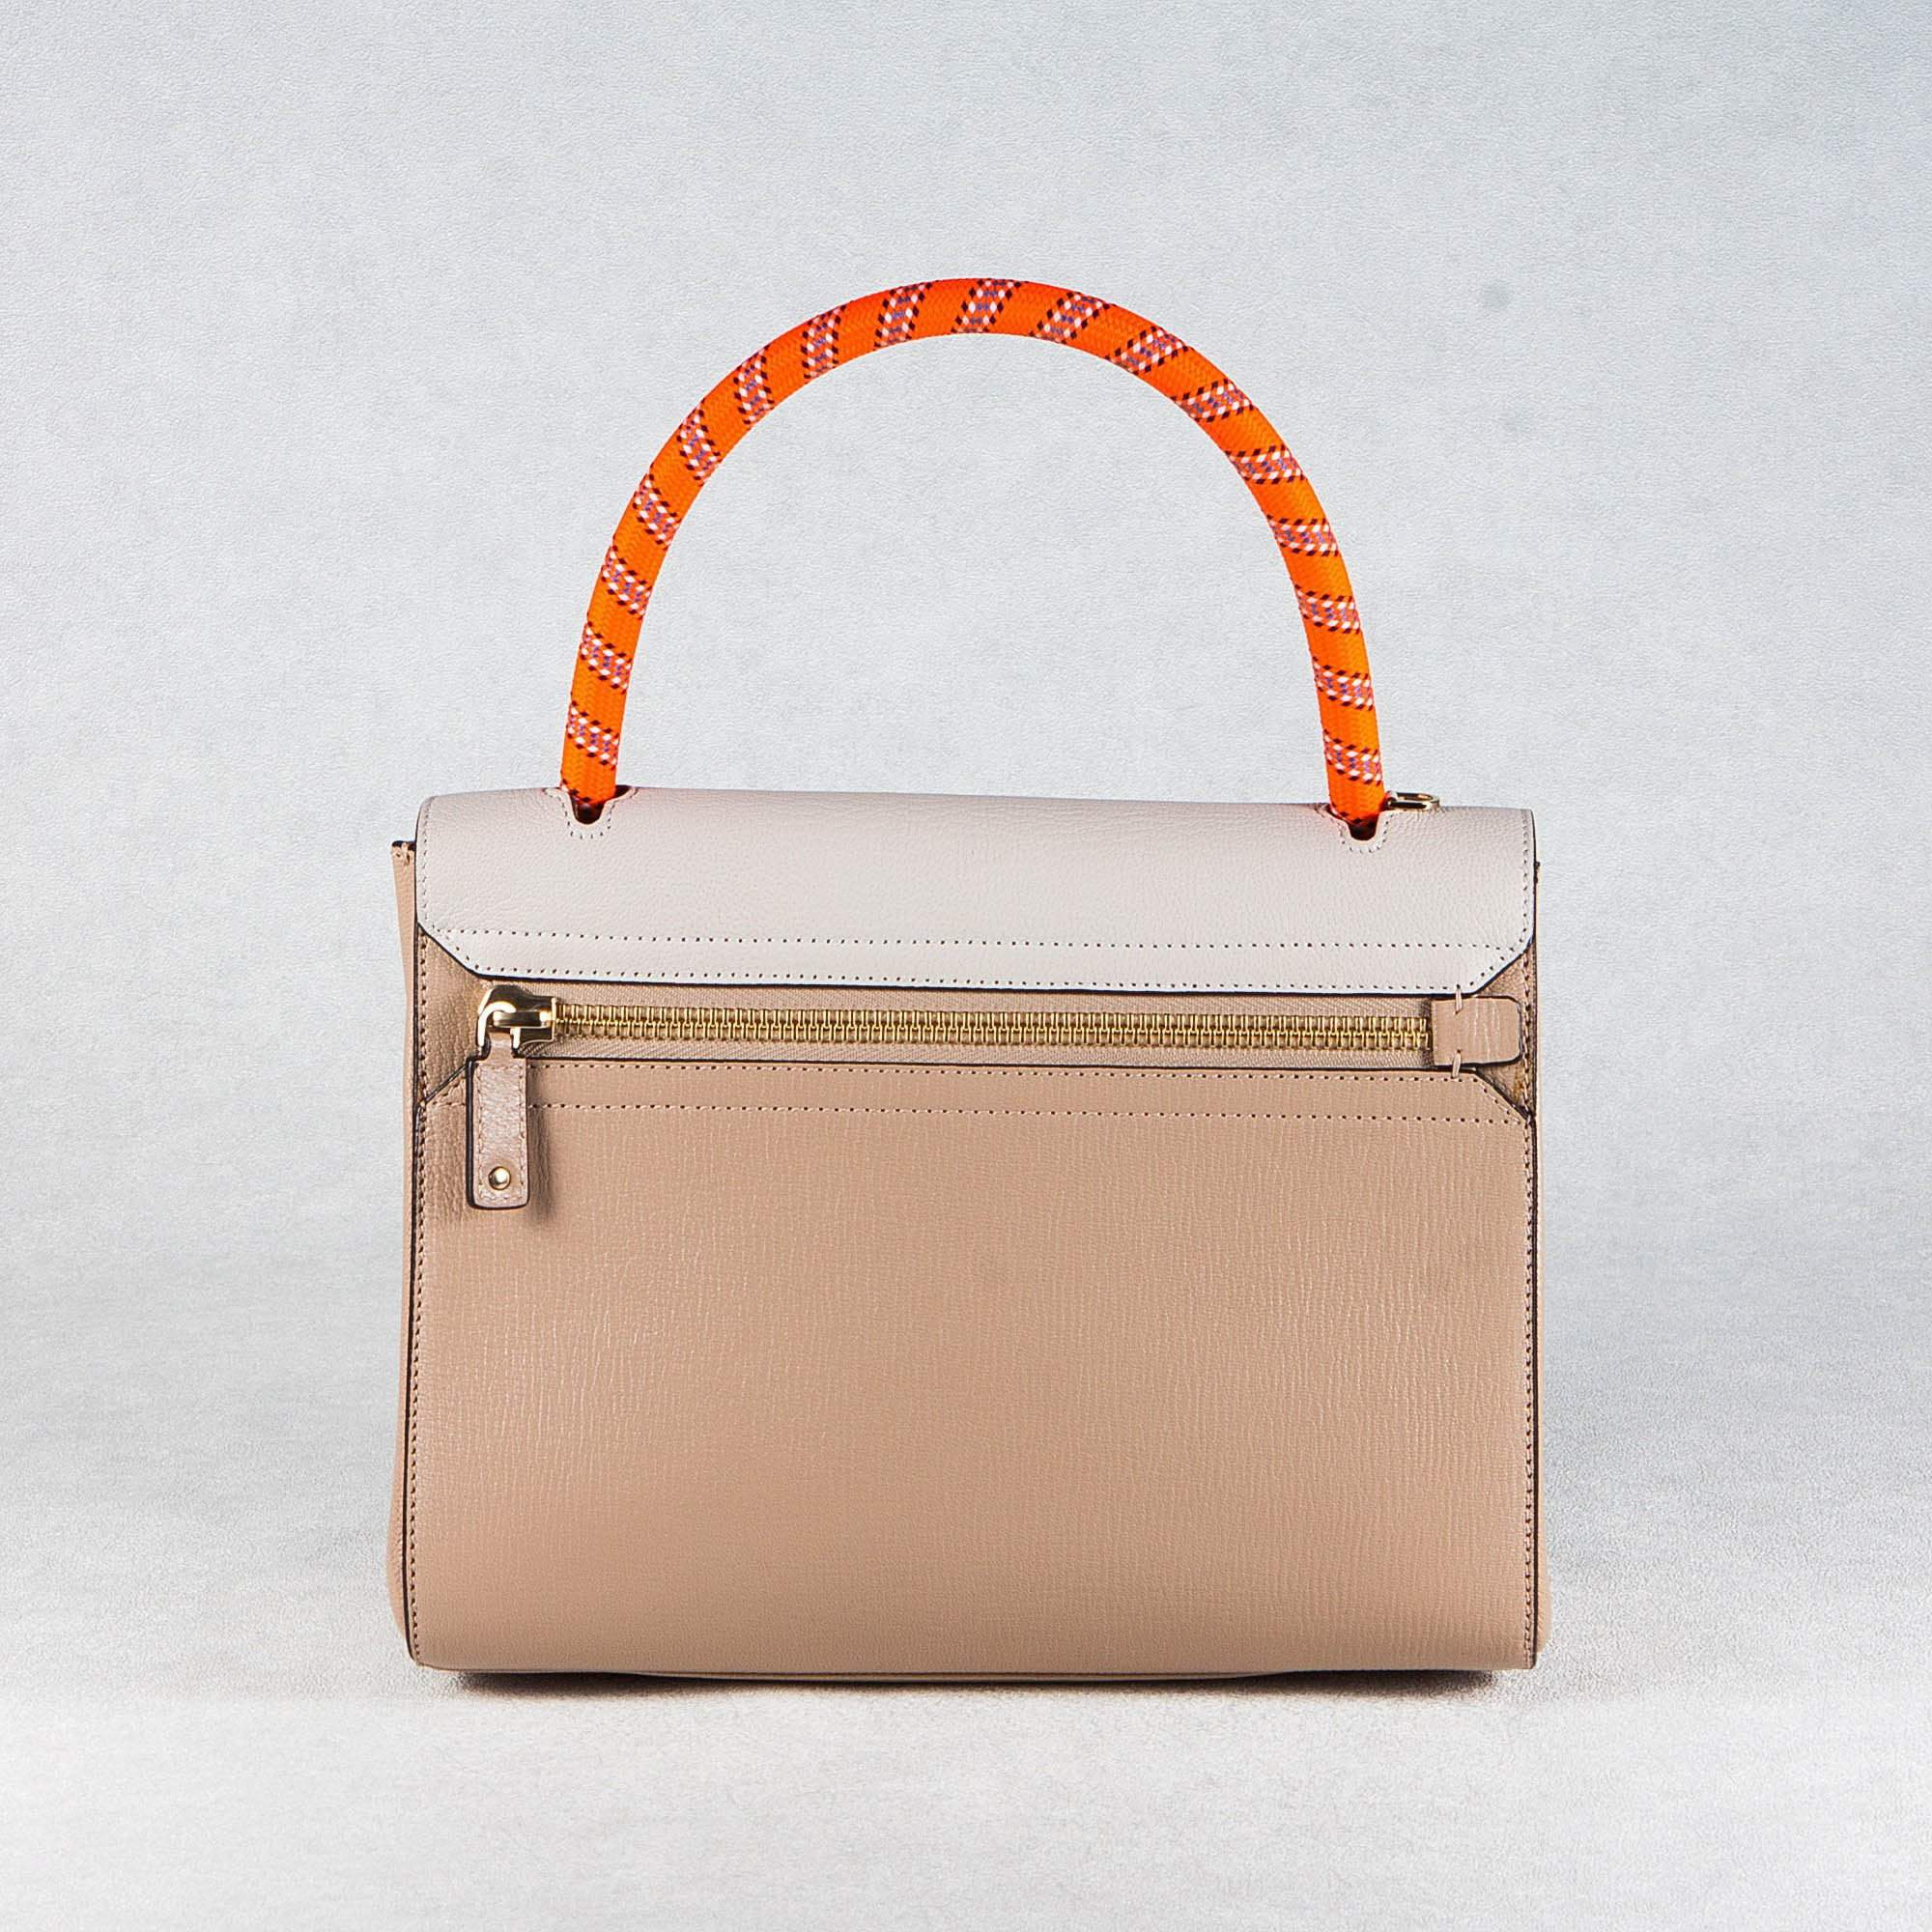 Anya Hindmarch 'Bathurst' handbag